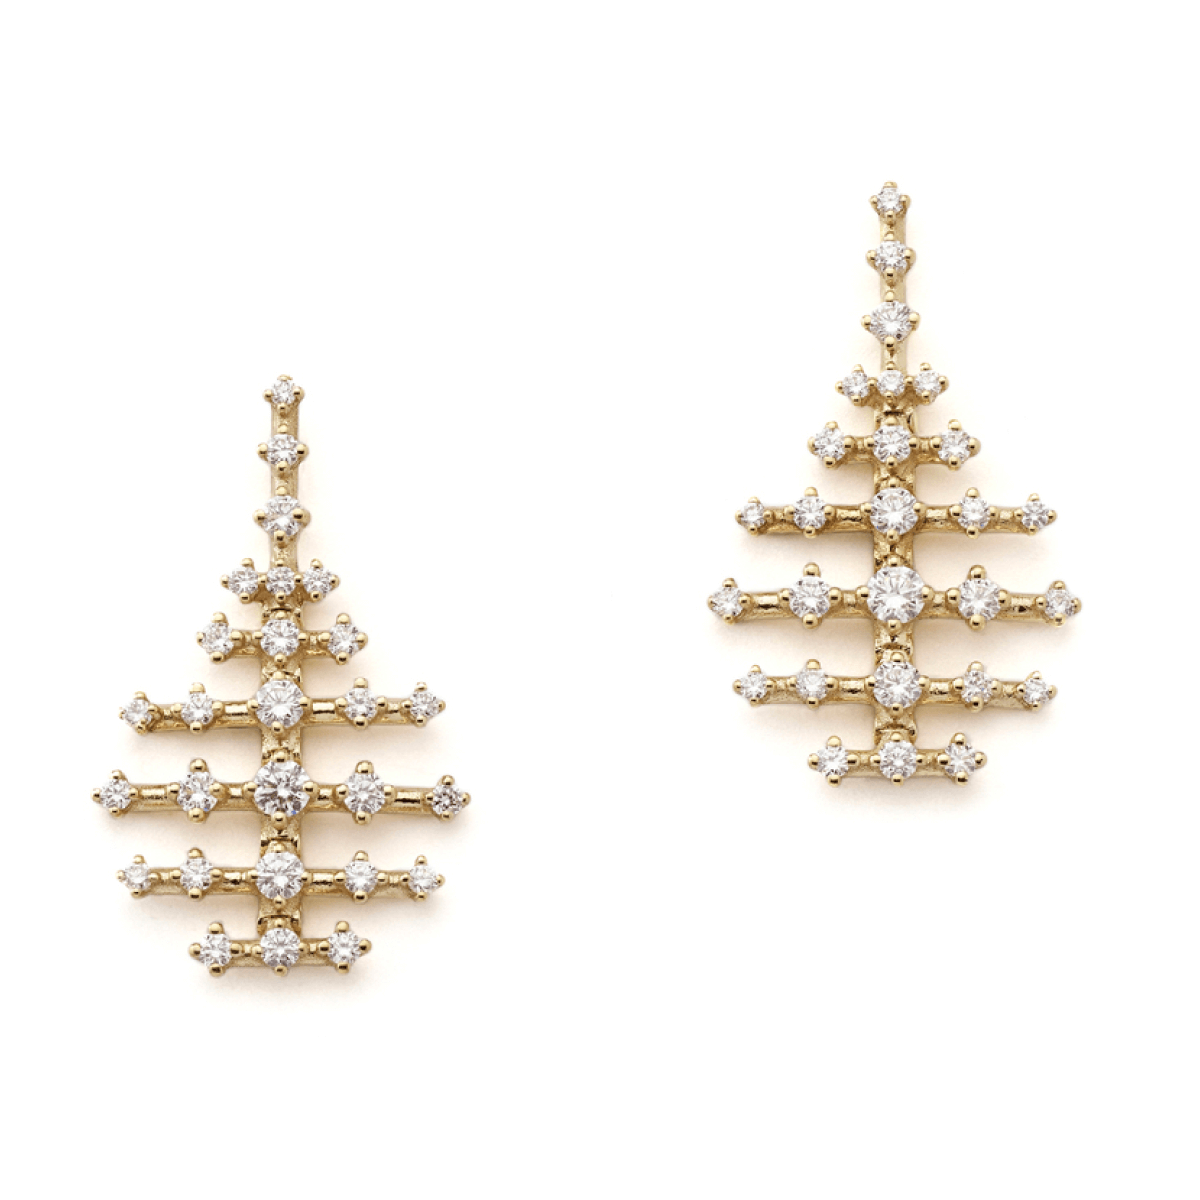 Fernando Jorge earrings